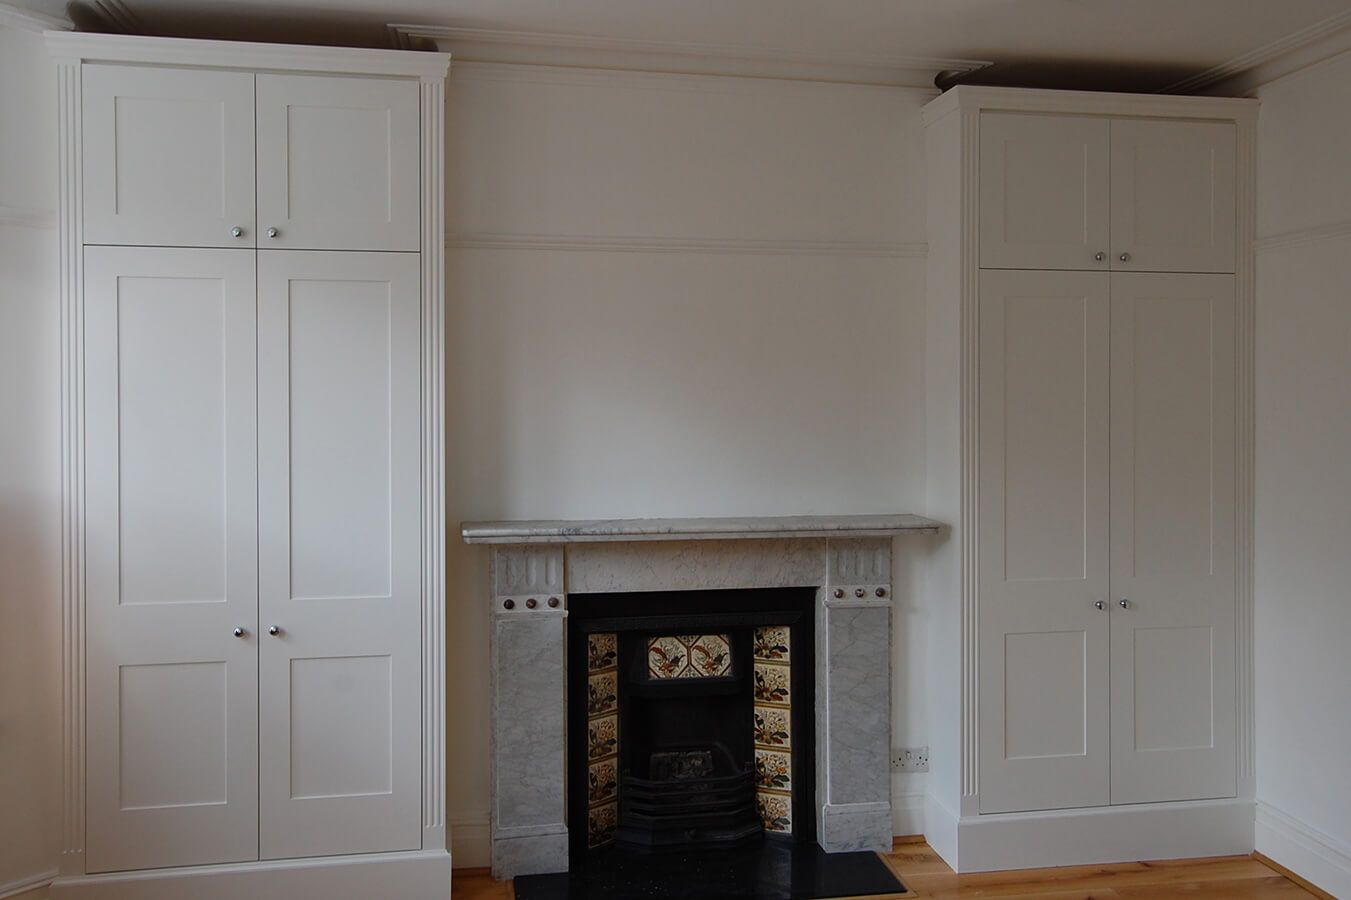 London built in wardrobes alcoves google search for Bedroom ideas with built in wardrobes